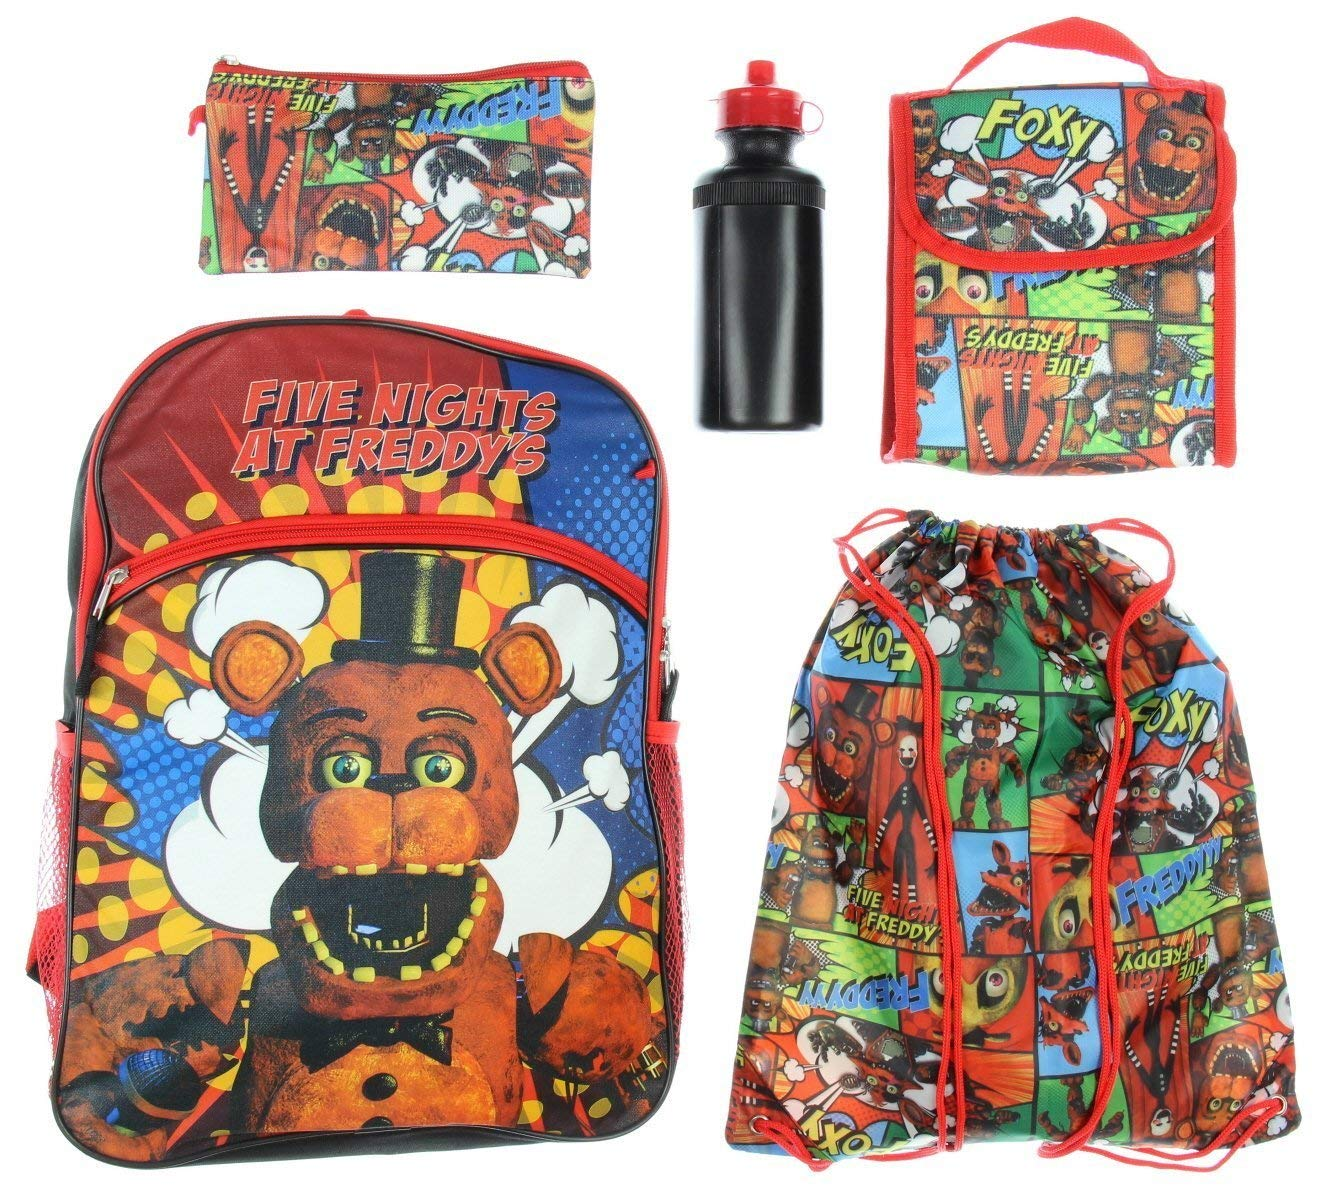 441b393e0ff Get Quotations · Five Nights At Freddy s Backpack Kids 5 PC Lunch Box Water  Bottle Cinch Bag Set